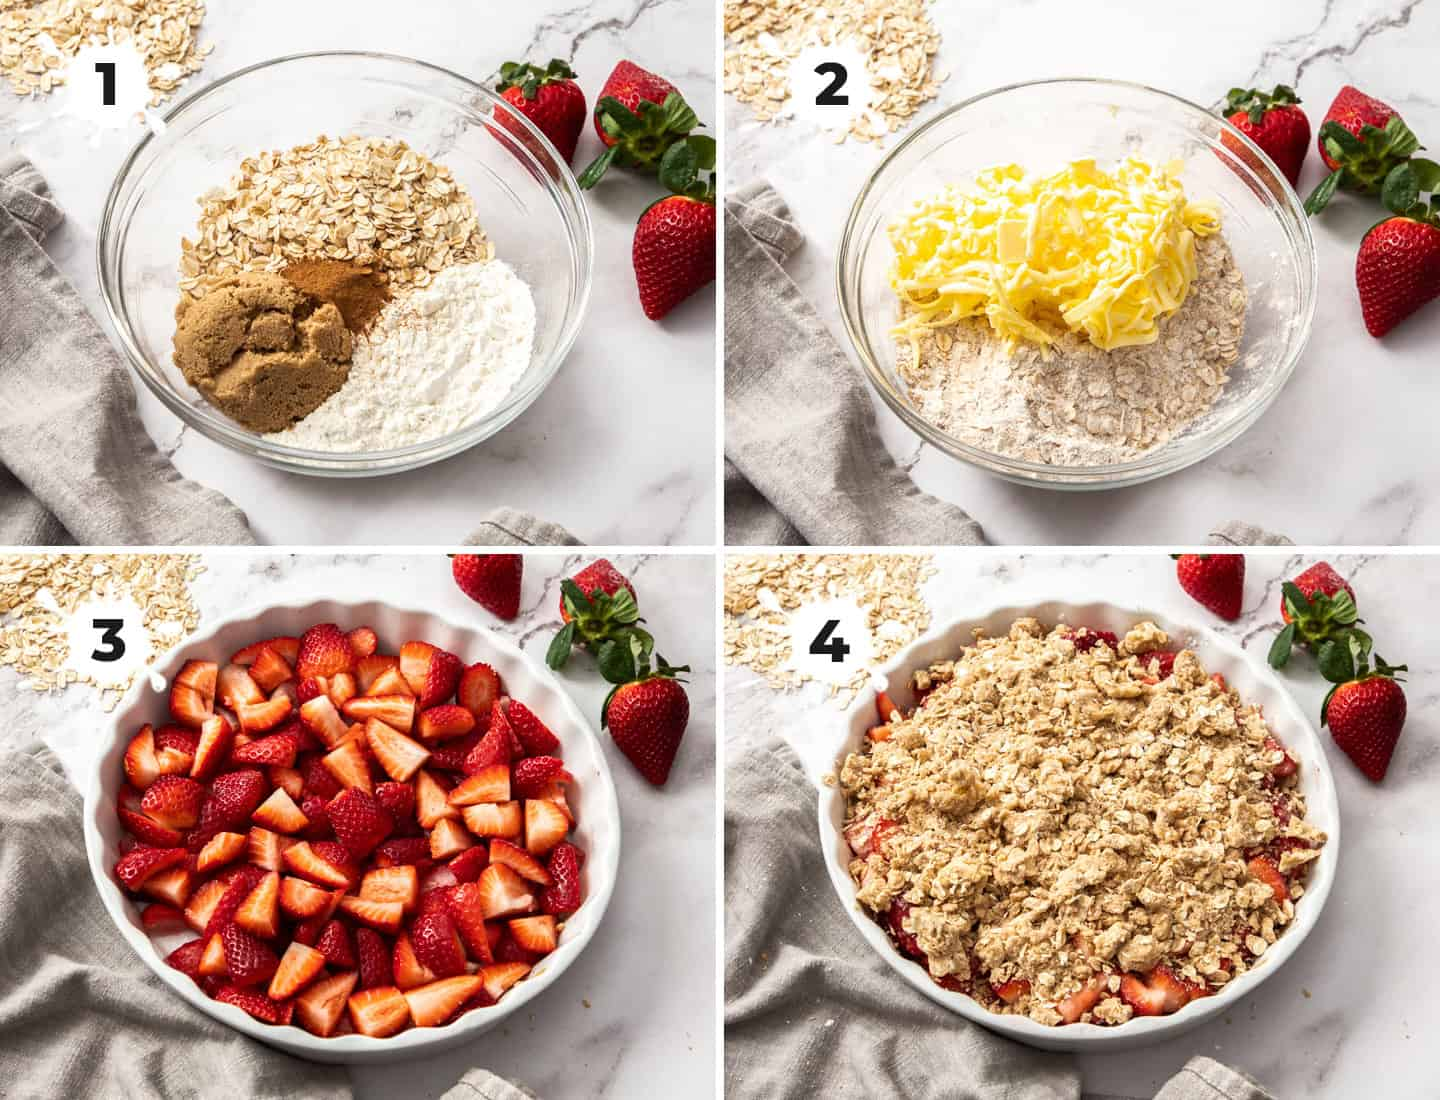 A collage of 4 images showing how to make strawberry crisp.